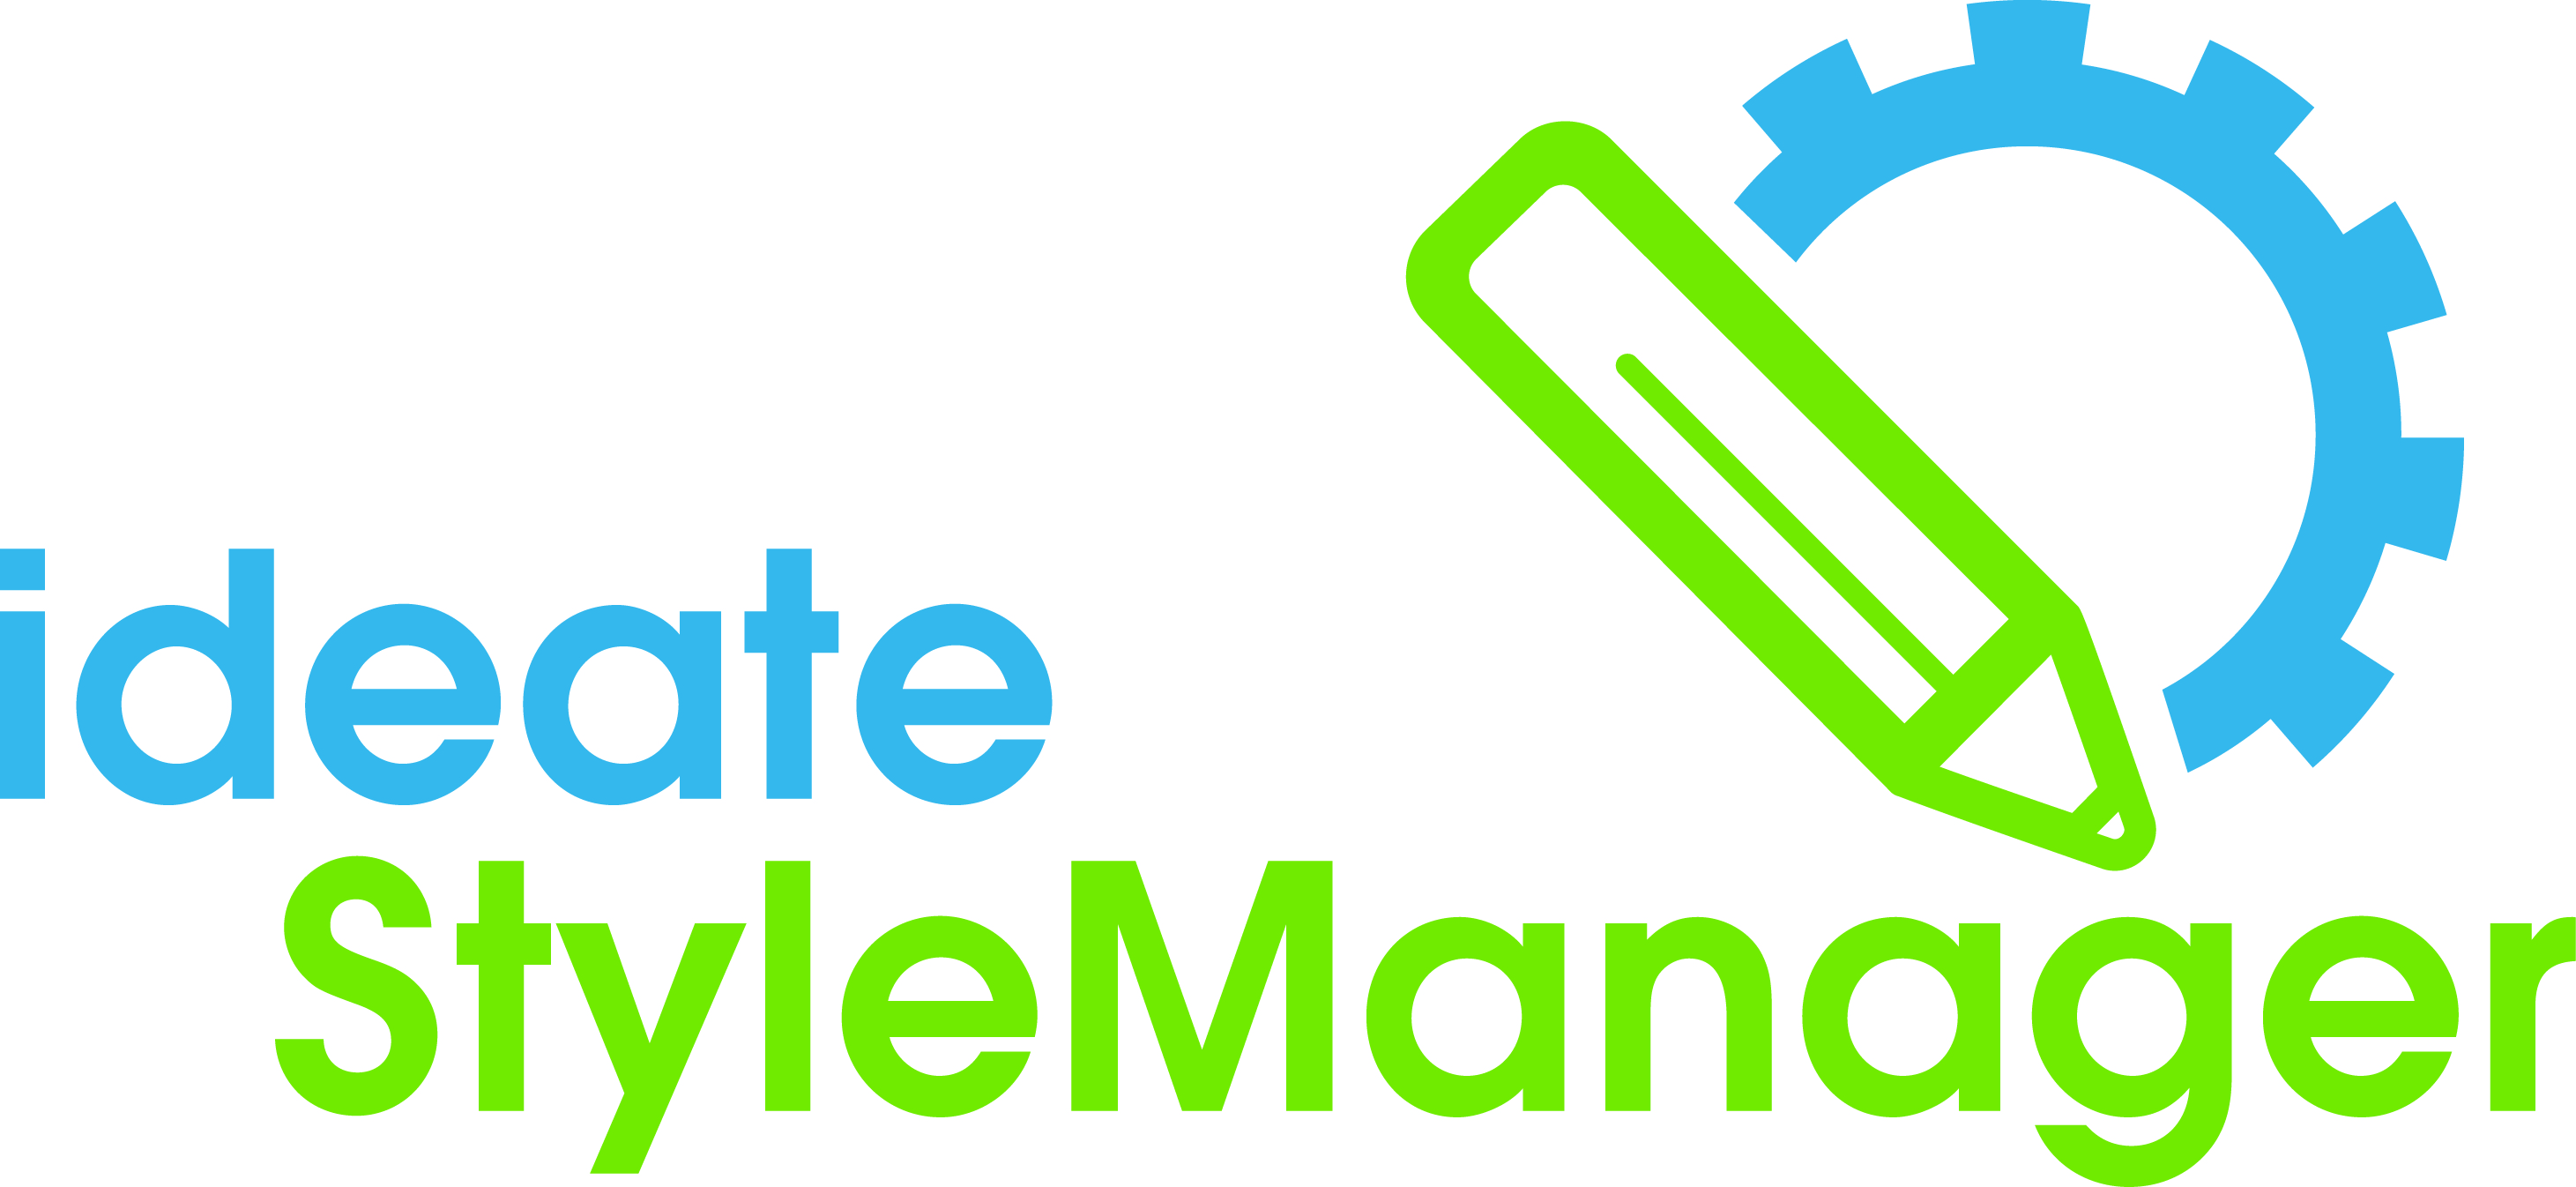 Ideate StyleManager Logo